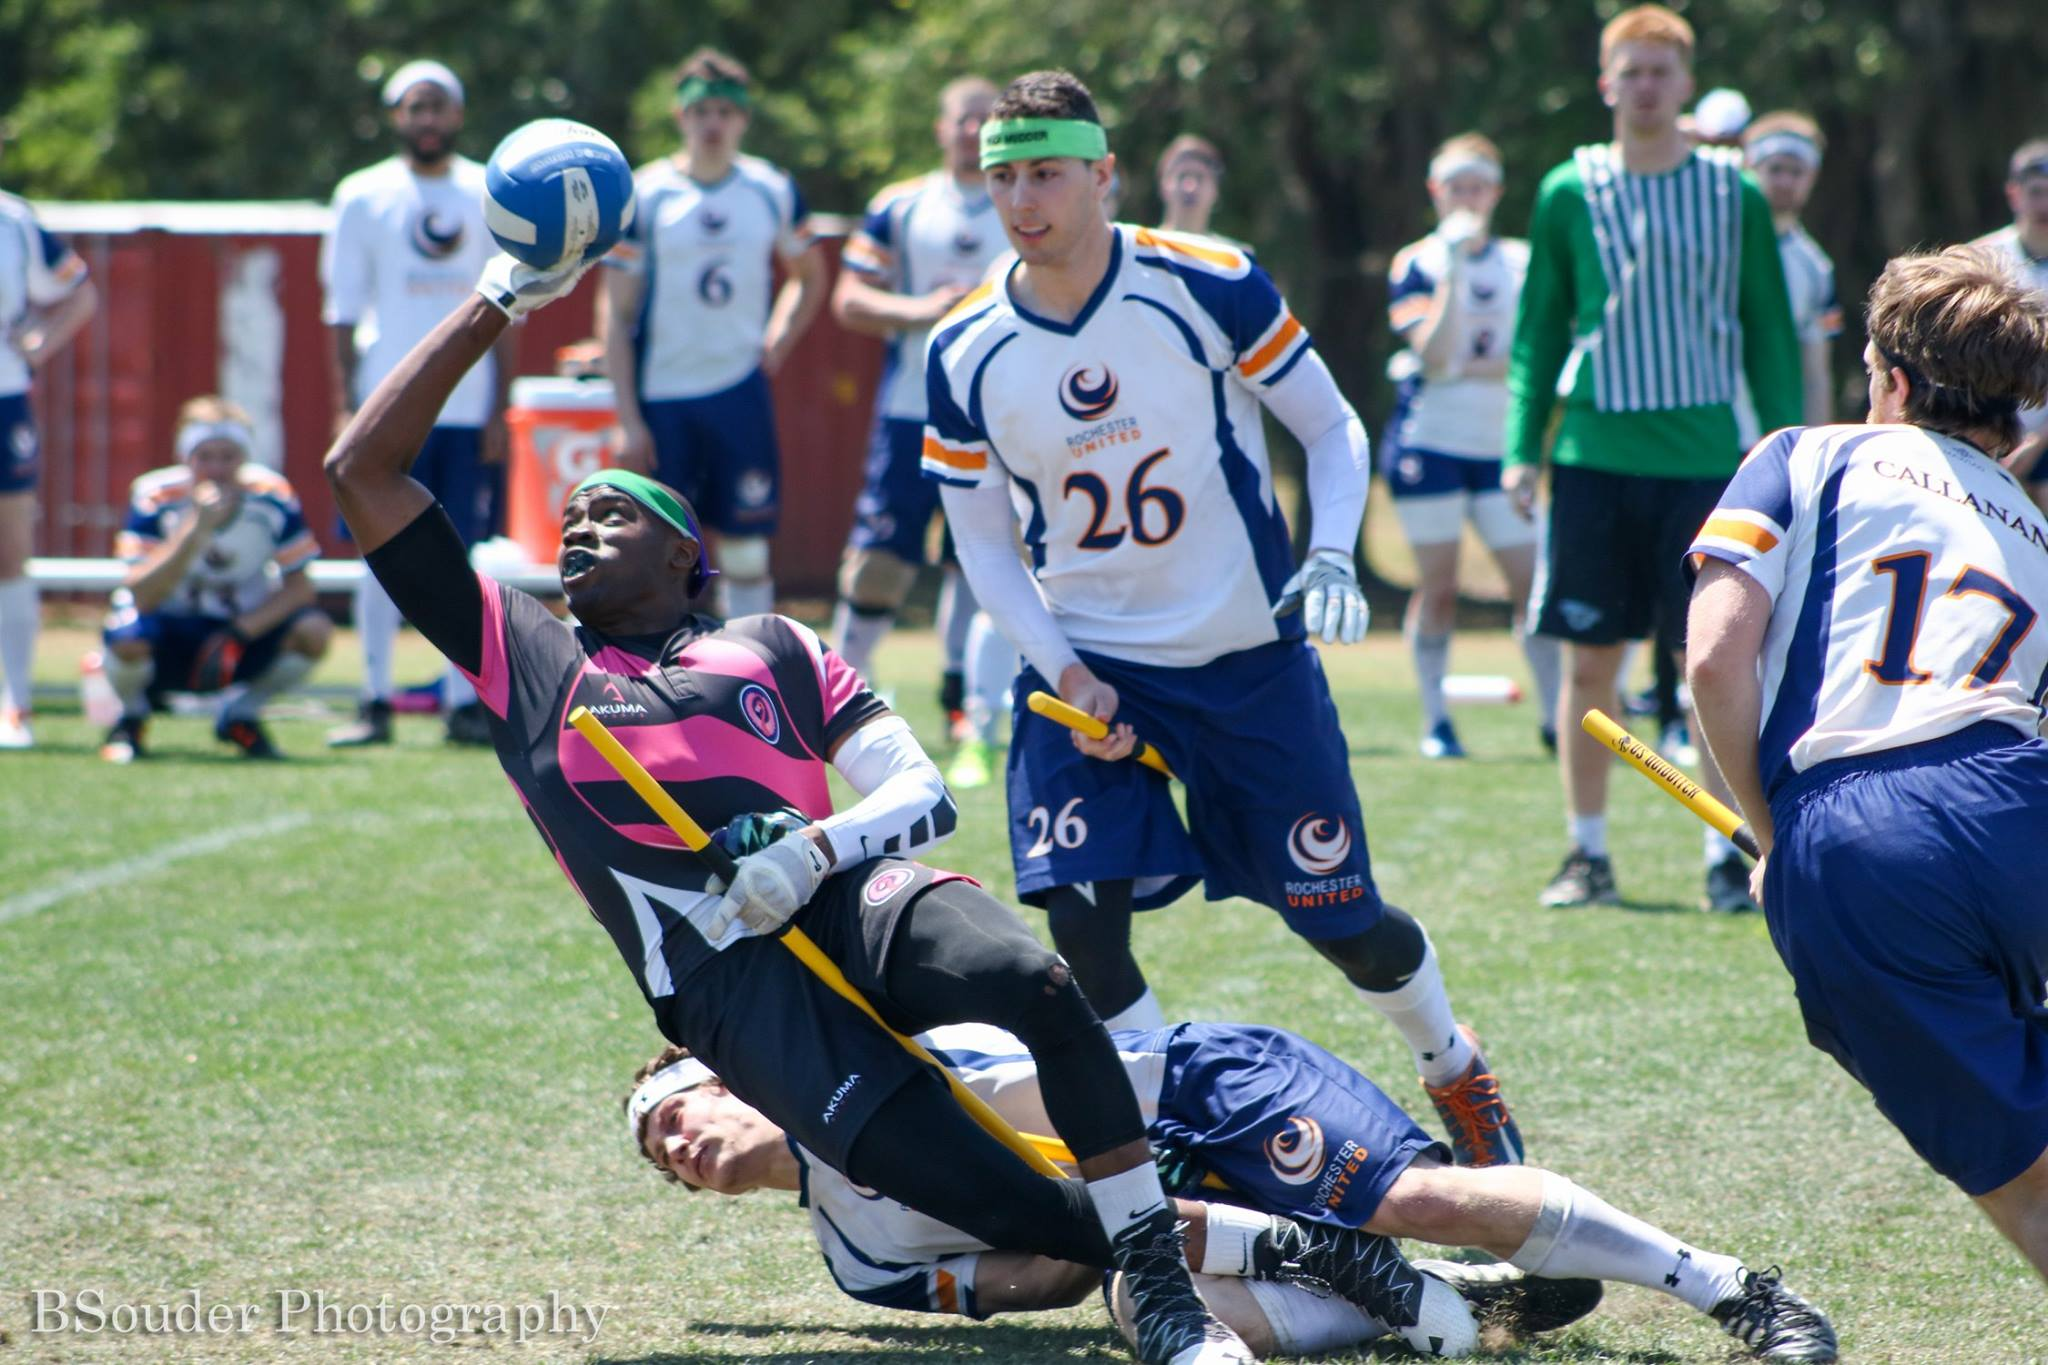 Quincy Hildreth shoots mid-tackle against Rochester United